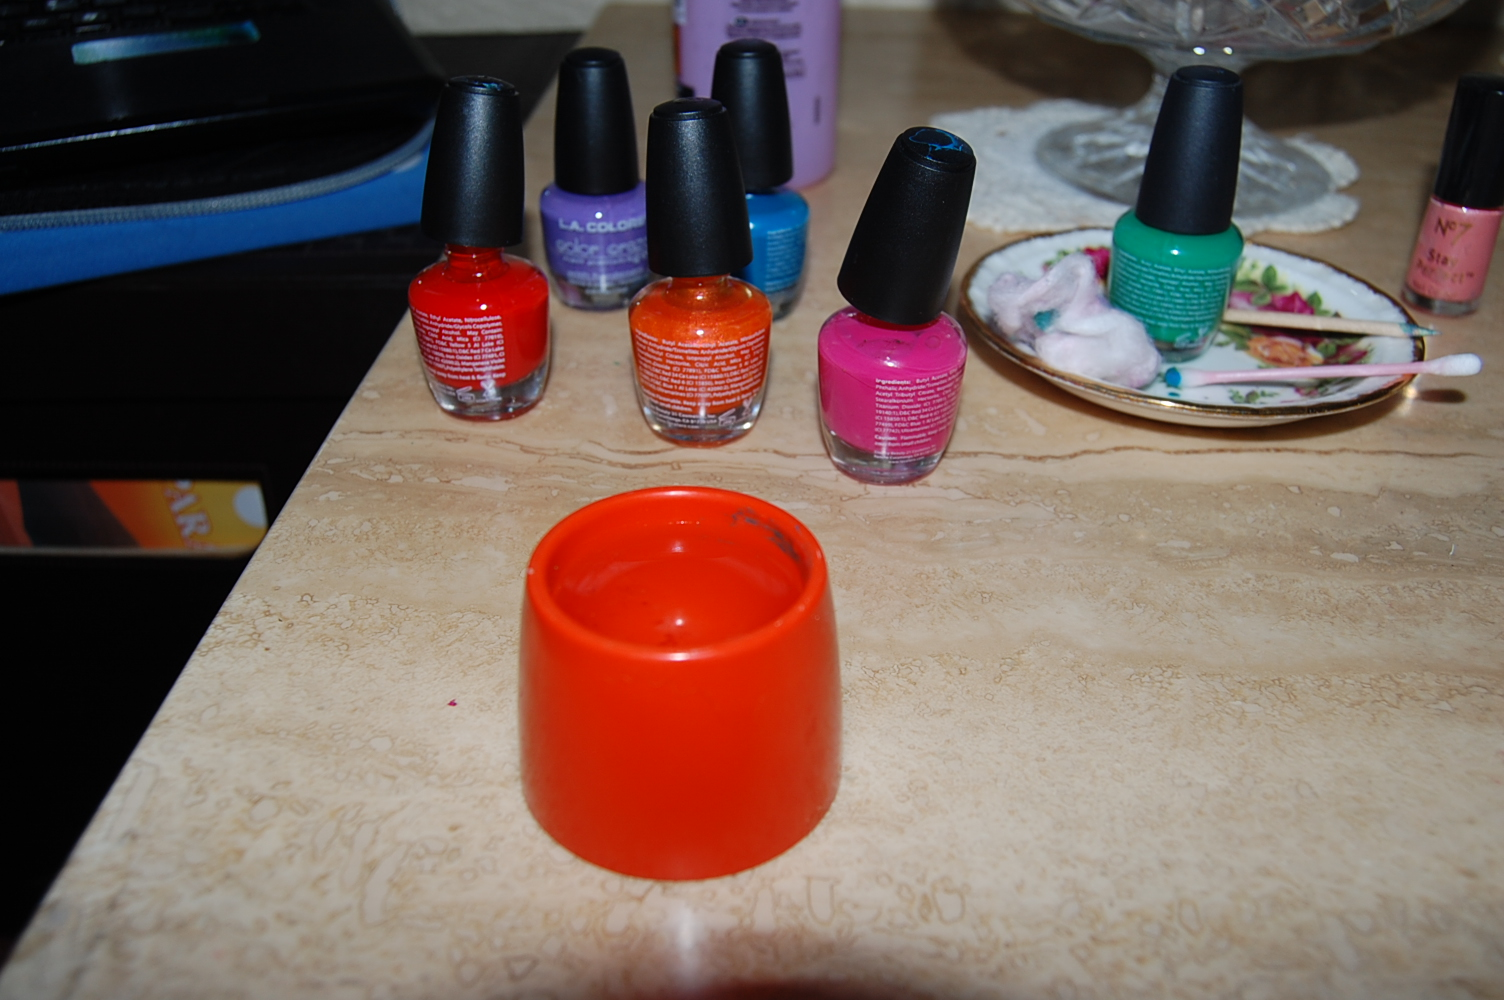 Materials Nail Polish Remover Cotton Wool Or Pads Needle Something Sharp Some Water And A Container To Put It In